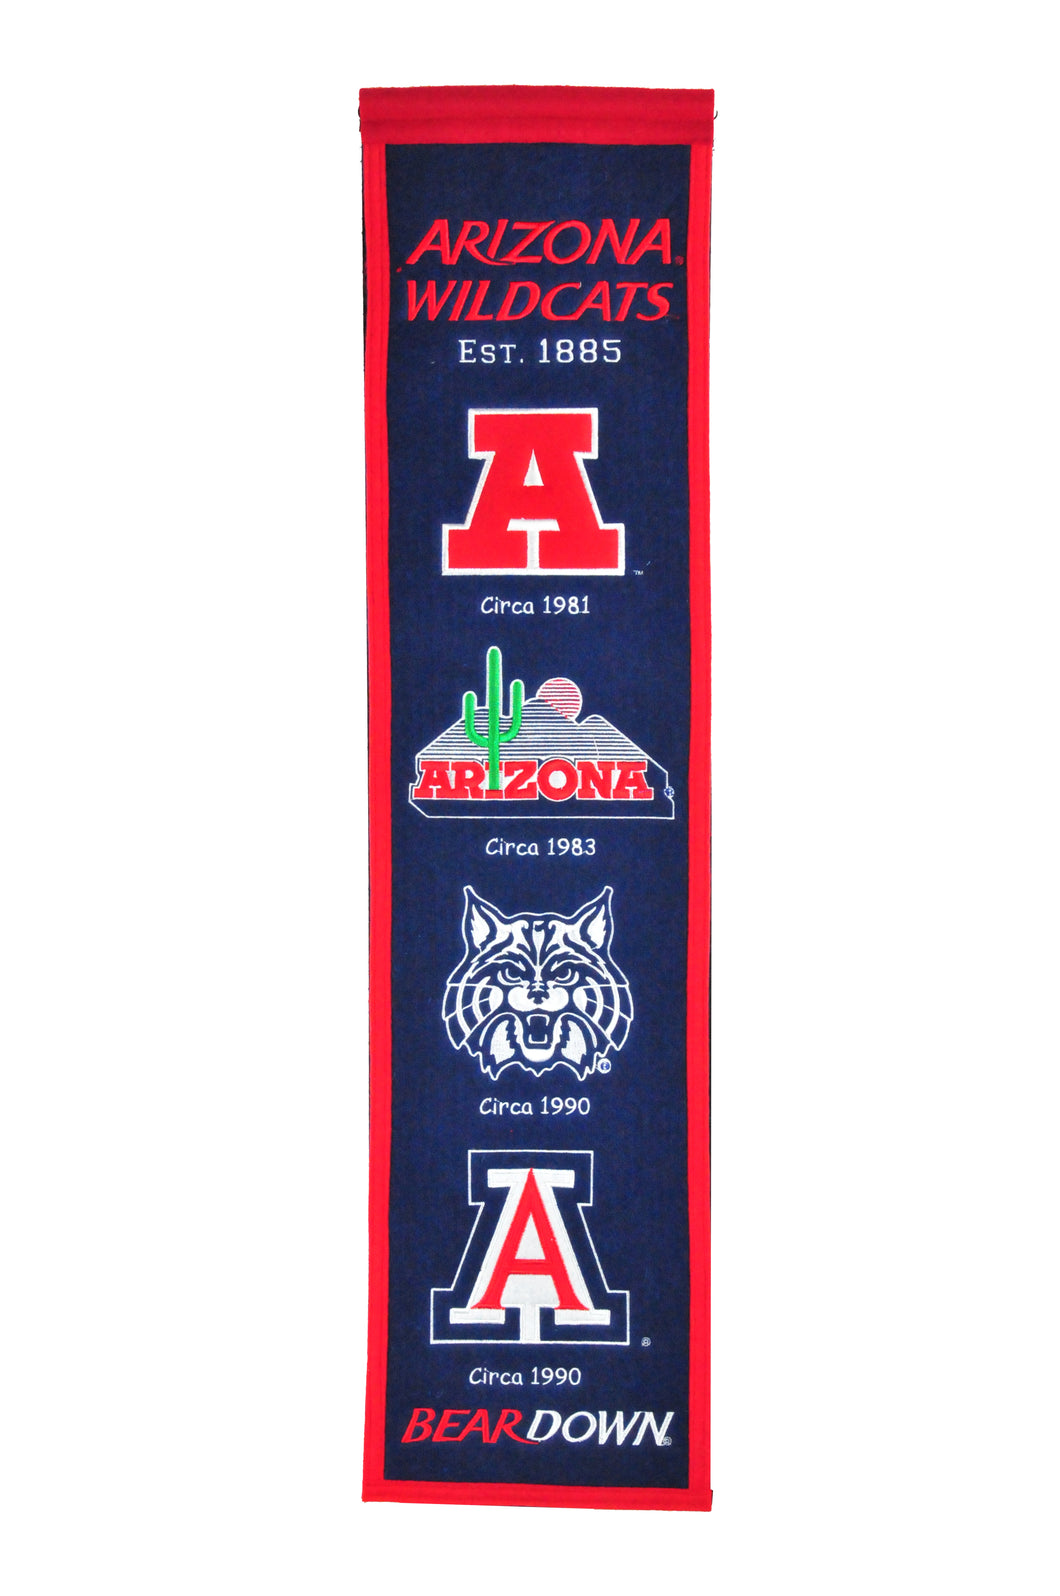 Arizona Wildcats Heritage Banner - 8